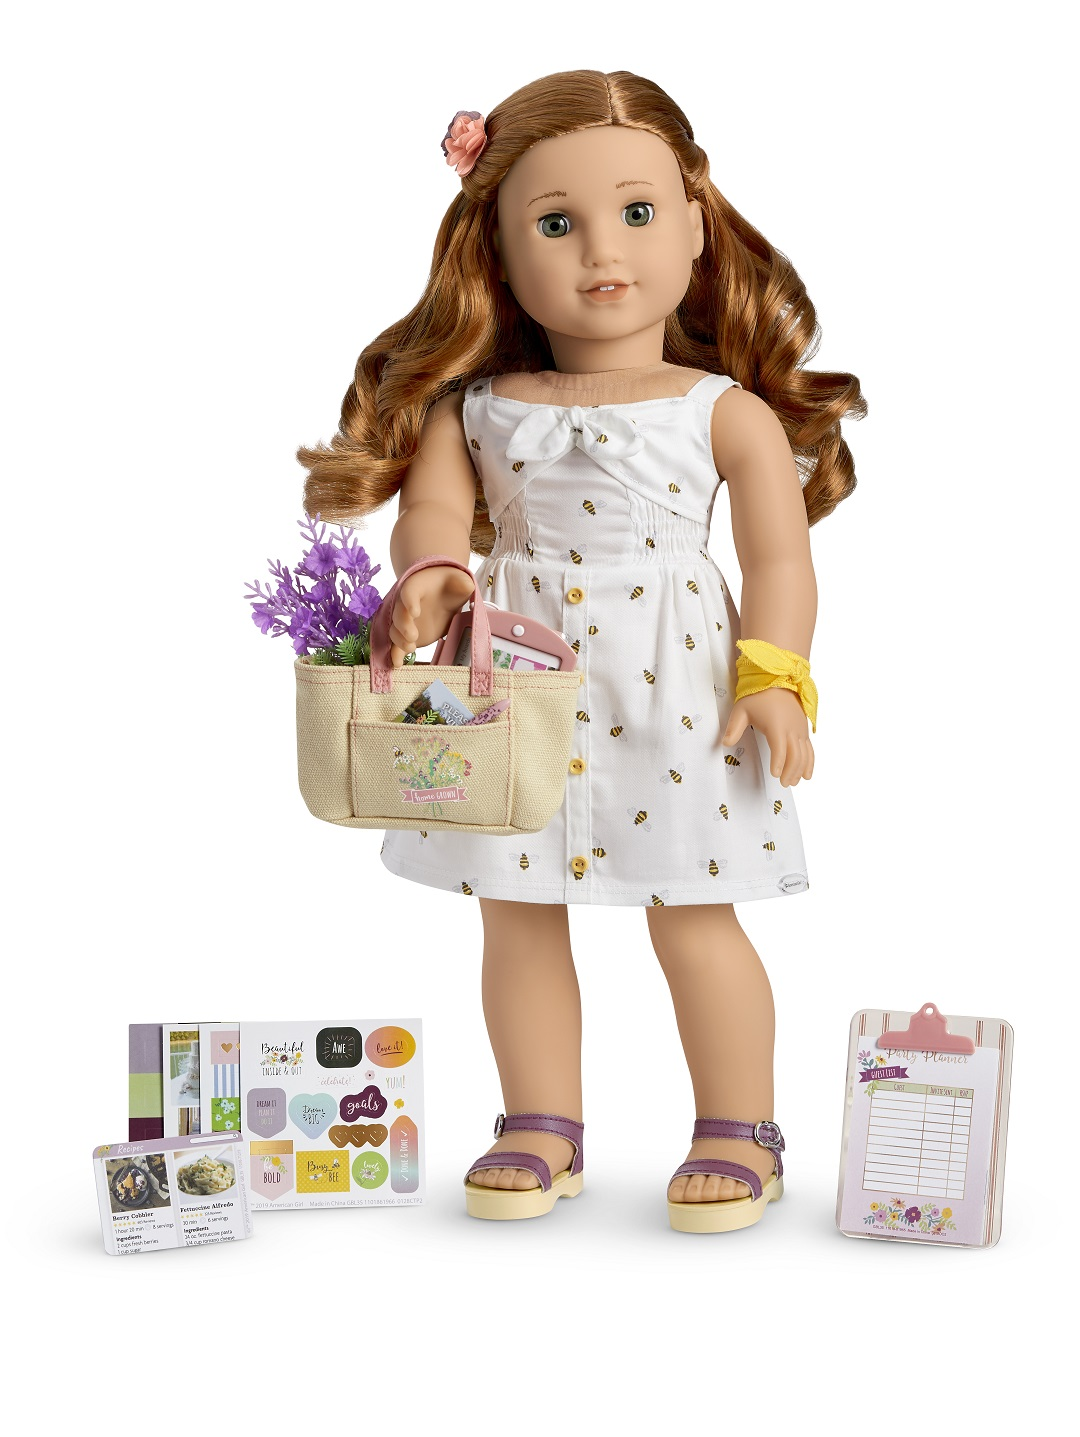 2019 American Girl Doll of the Year Blaire Wilson